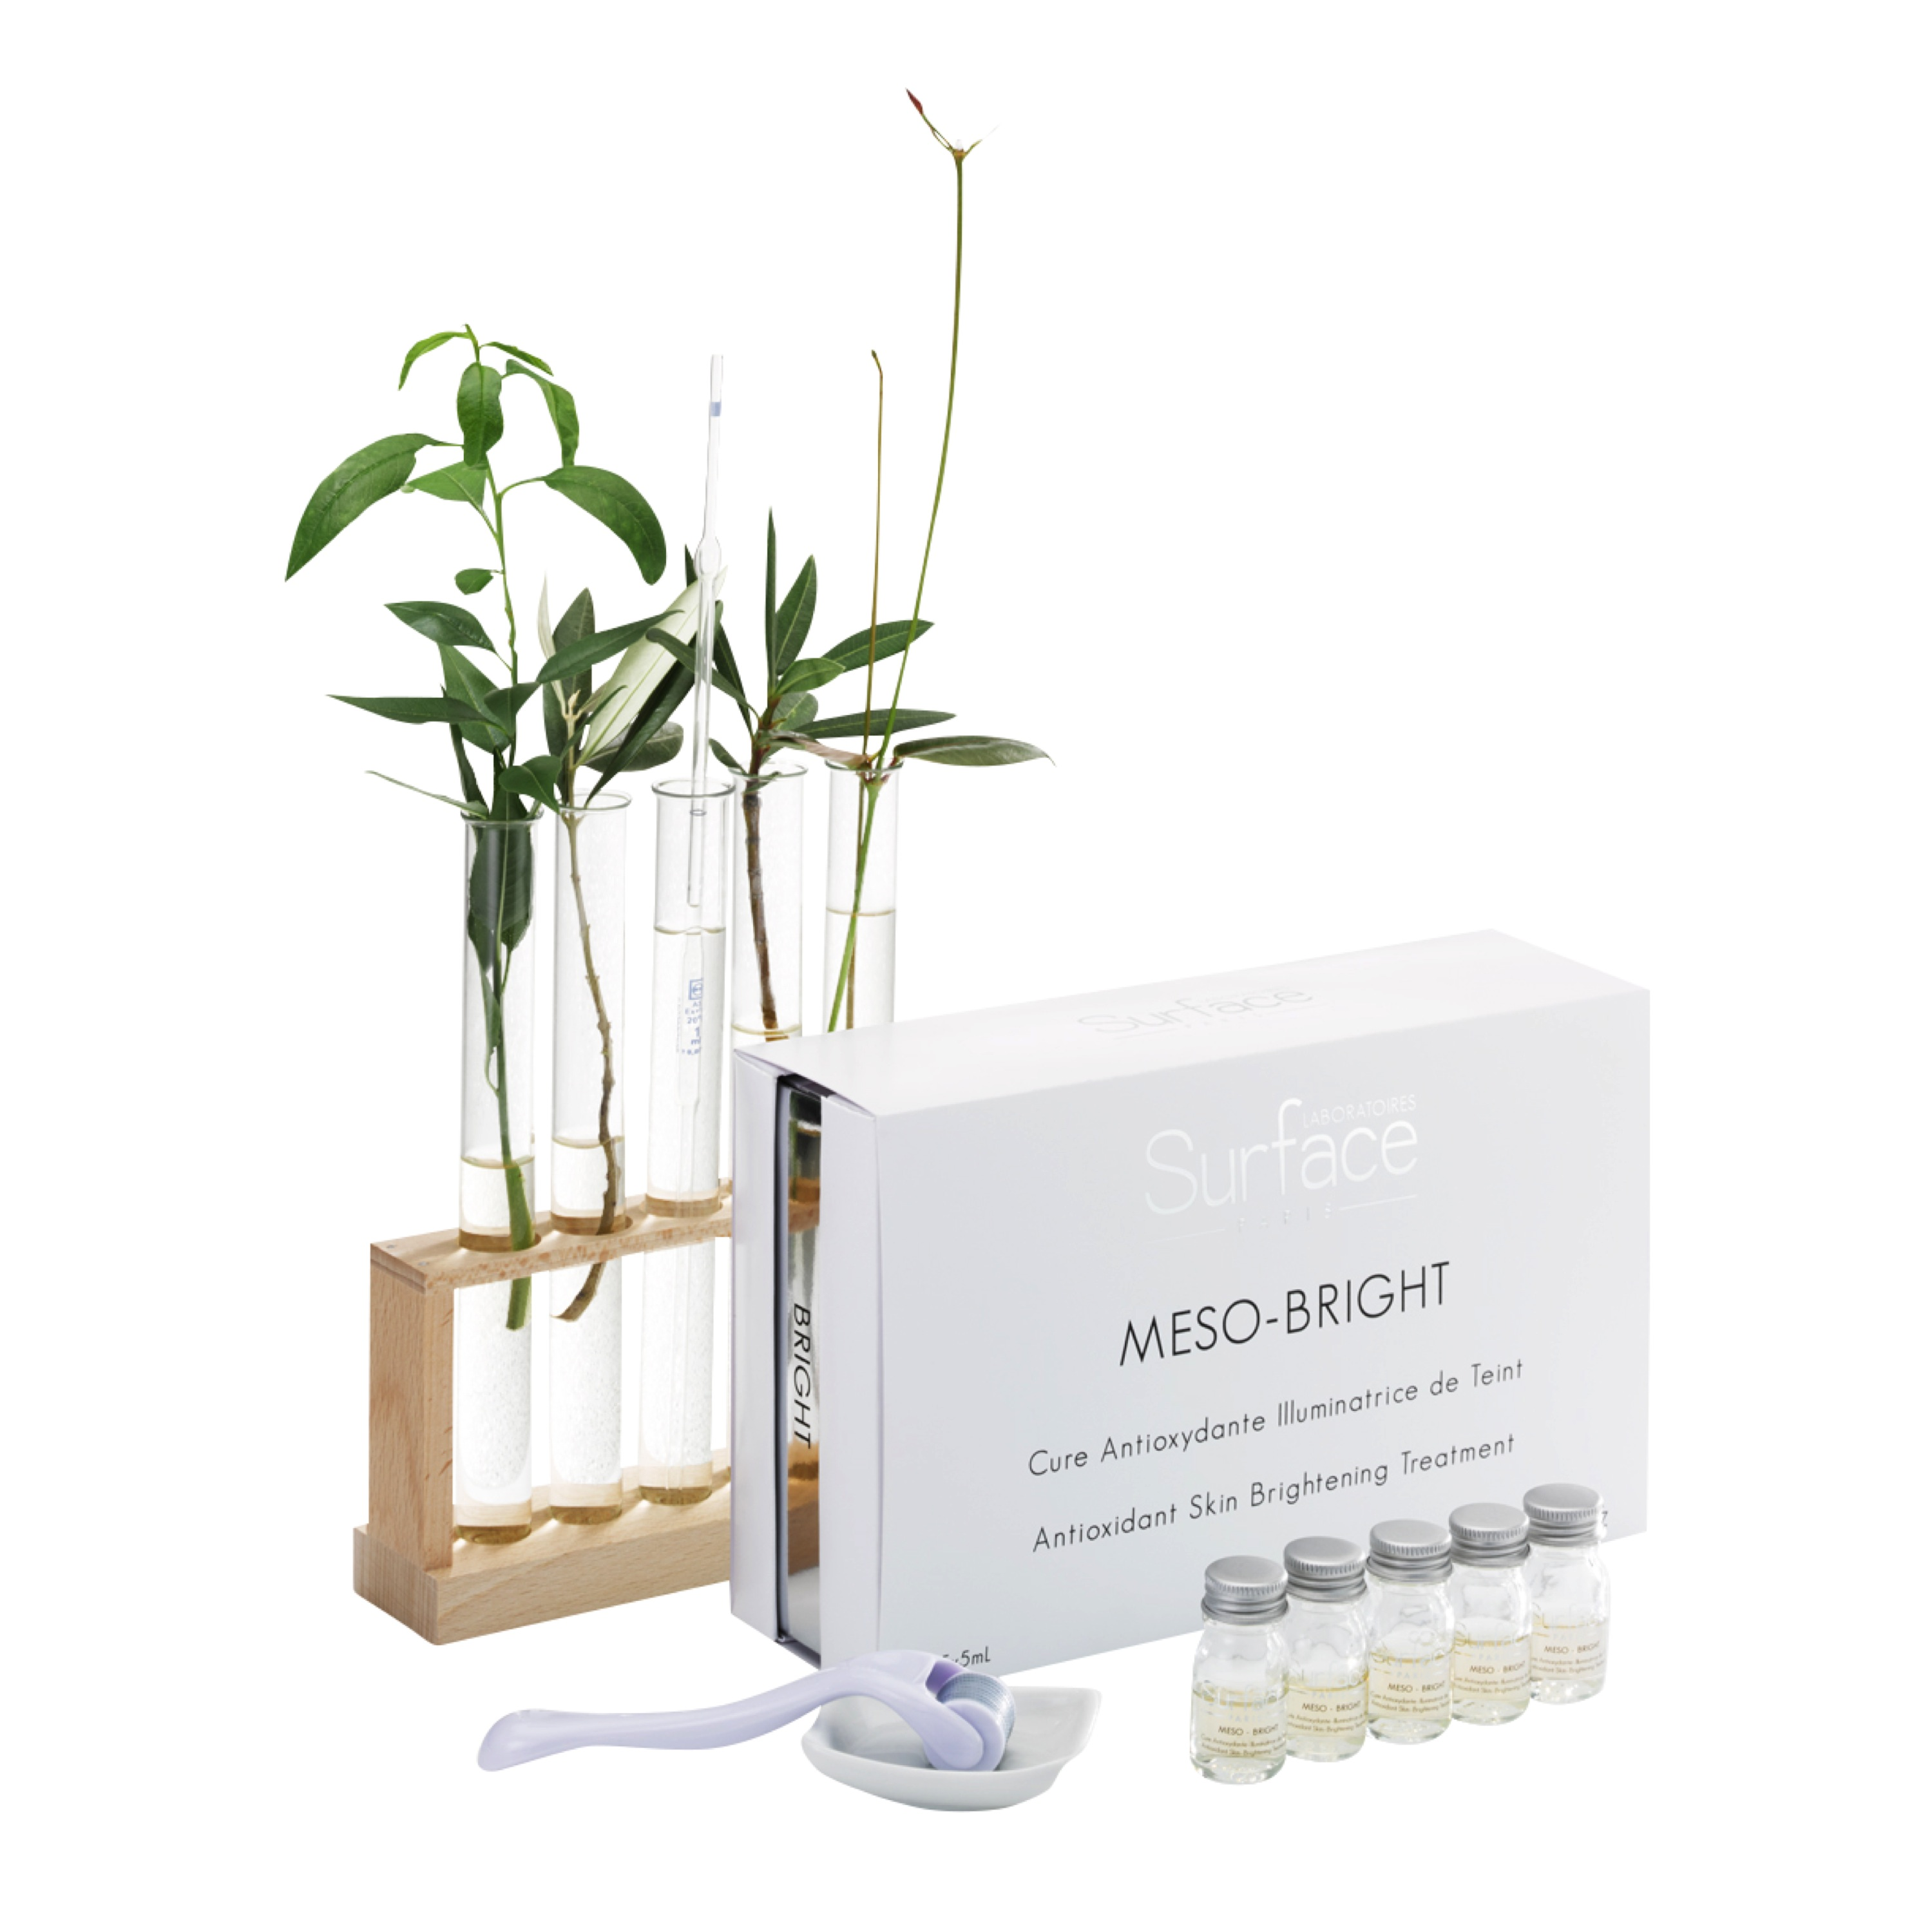 Surface Paris Meso Bright At-Home Mesotherapy Treatment